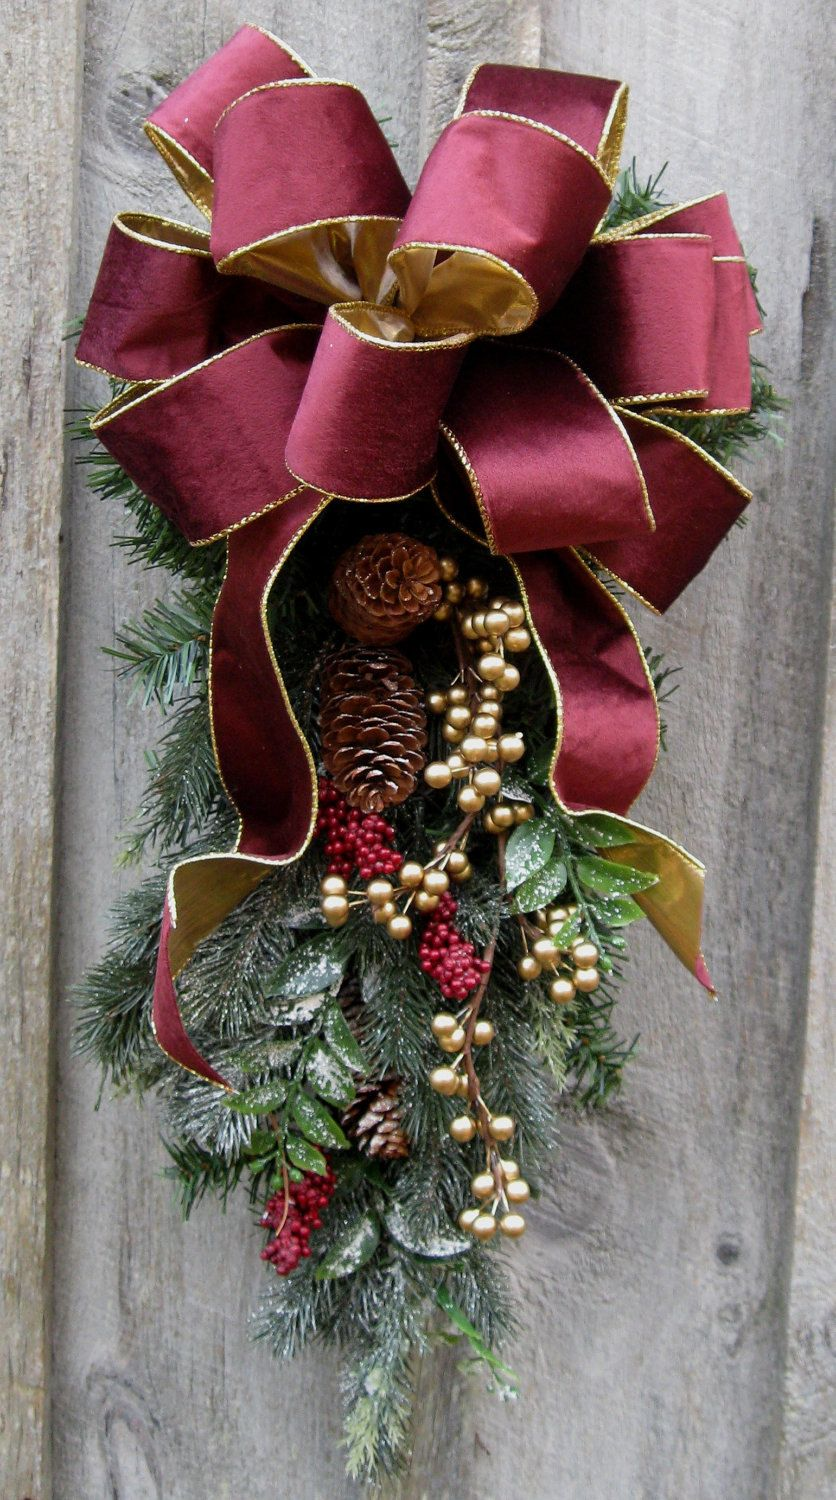 Christmas swag holiday wreaths victorian elegant designer door christmas swag holiday wreaths victorian elegant designer door decor rubansaba